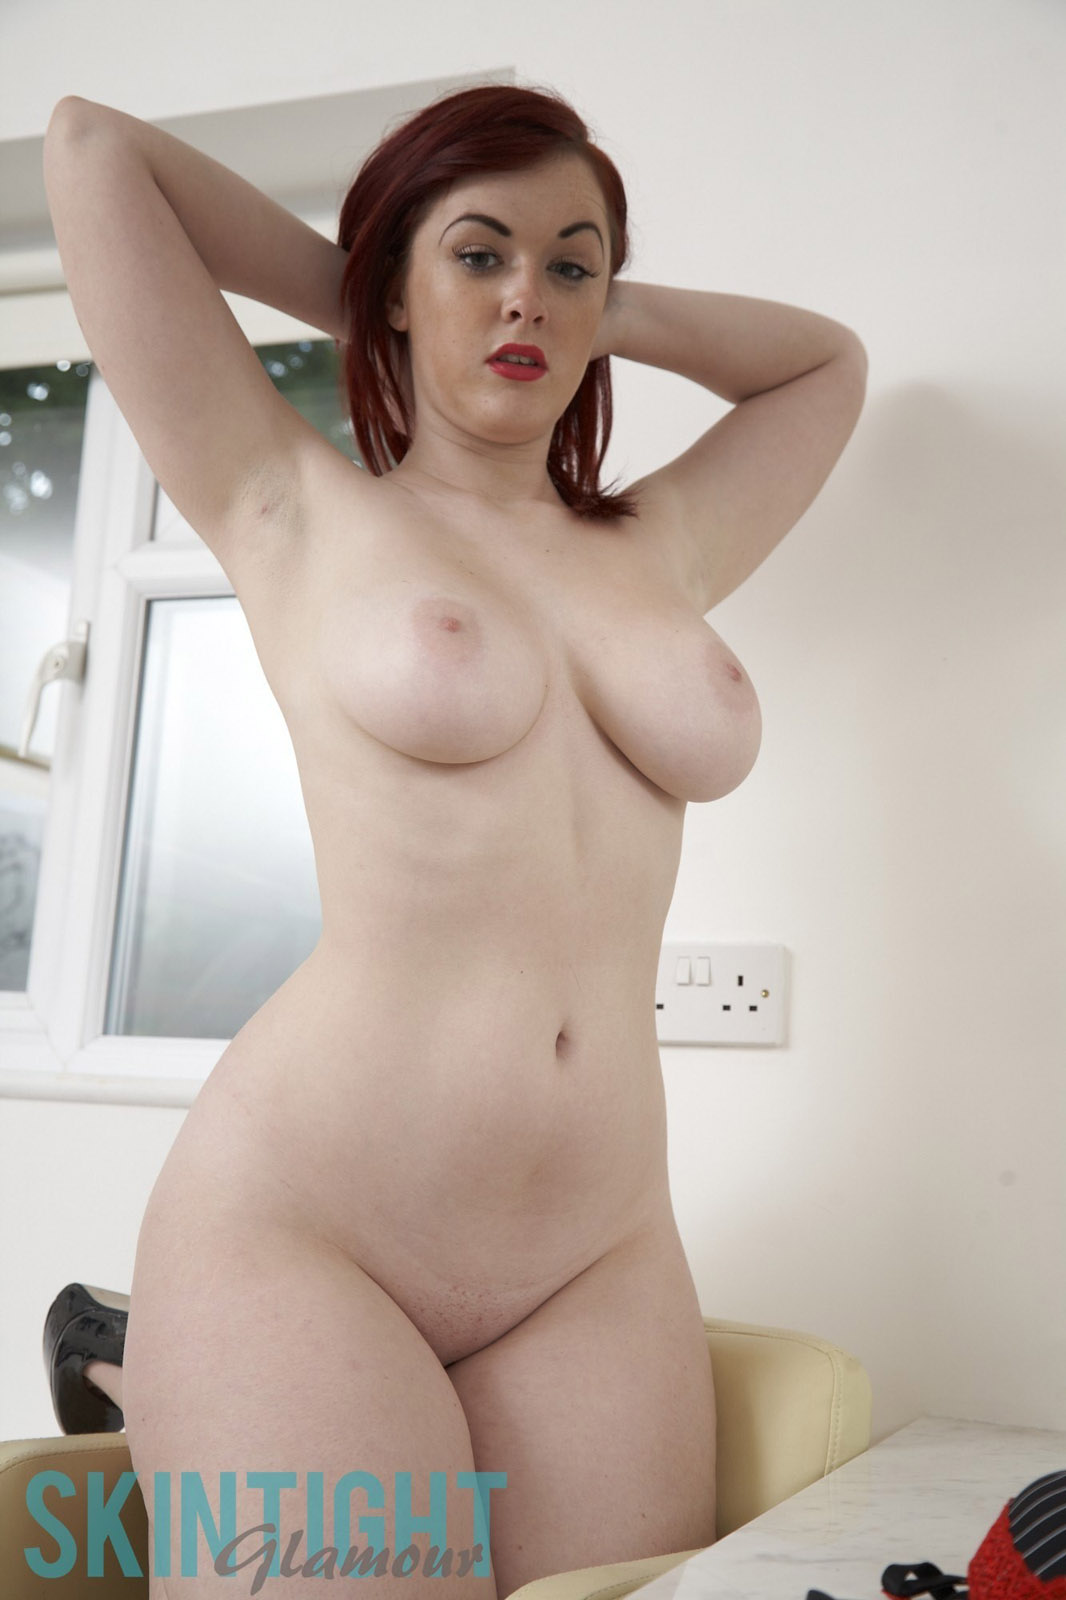 wel e to skin tight glamour the site that brings you the best of